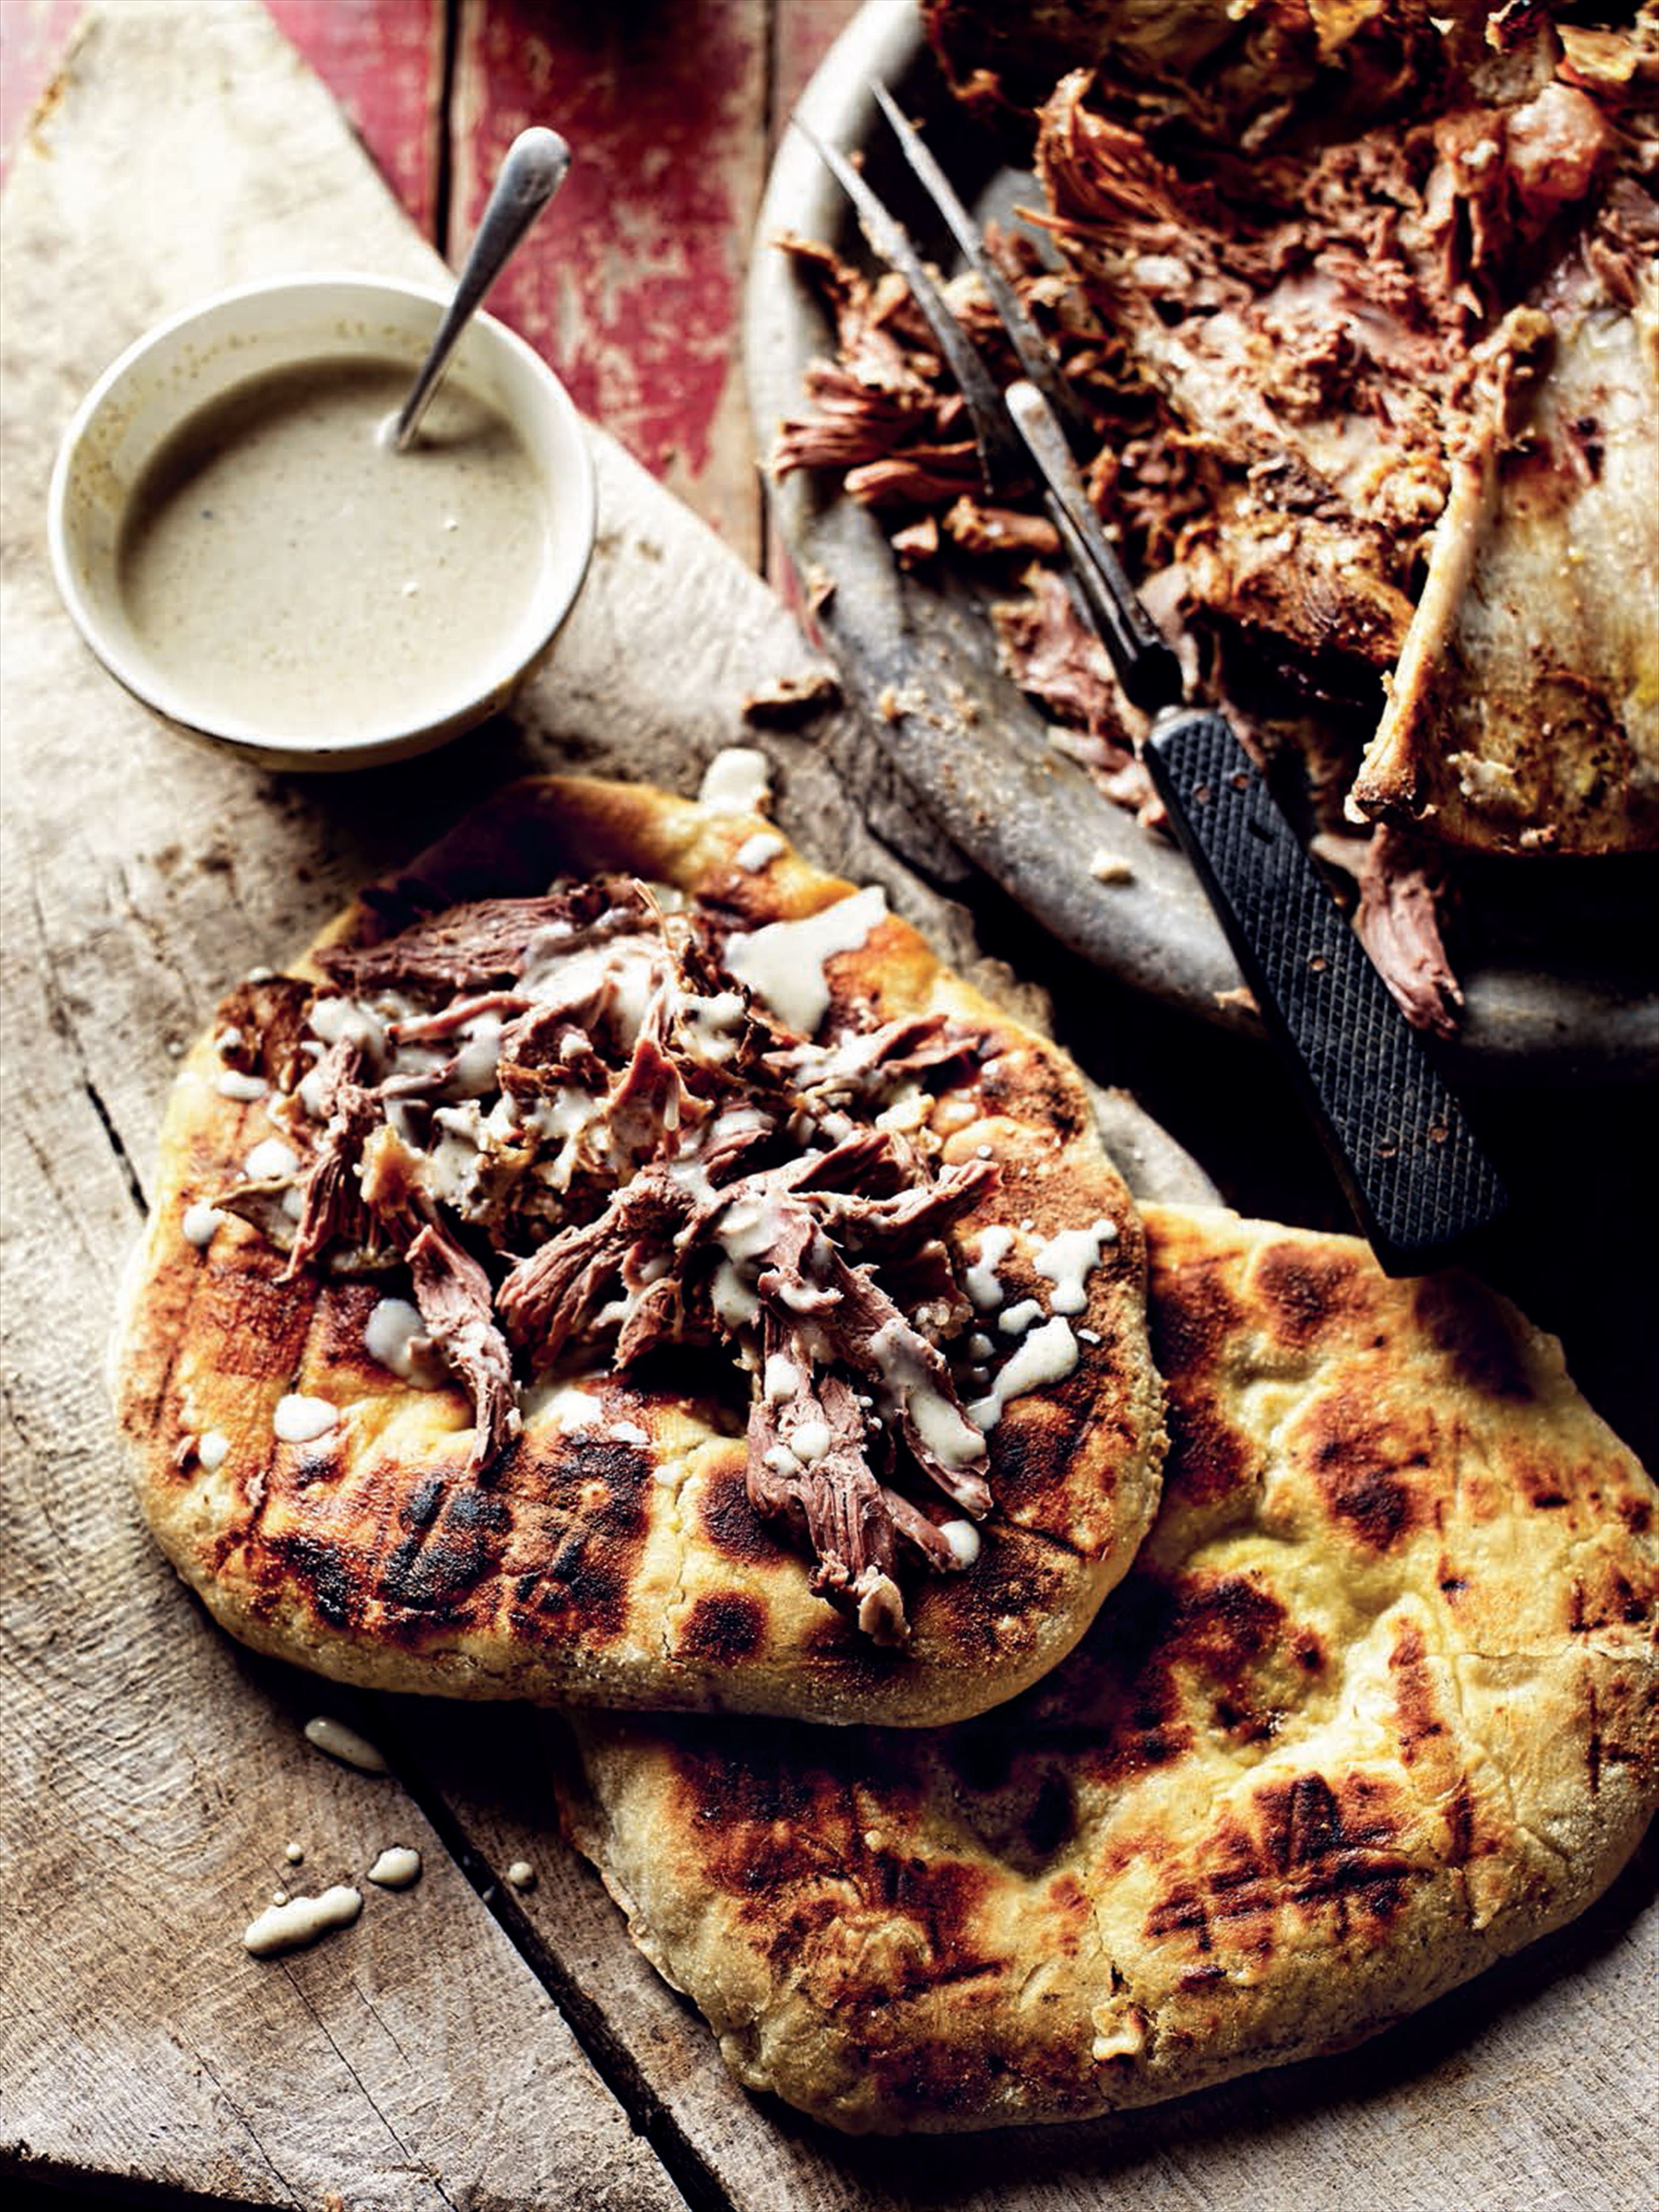 Slow-cooked hogget shoulder with cumin, smoked paprika and buttermilk dressing